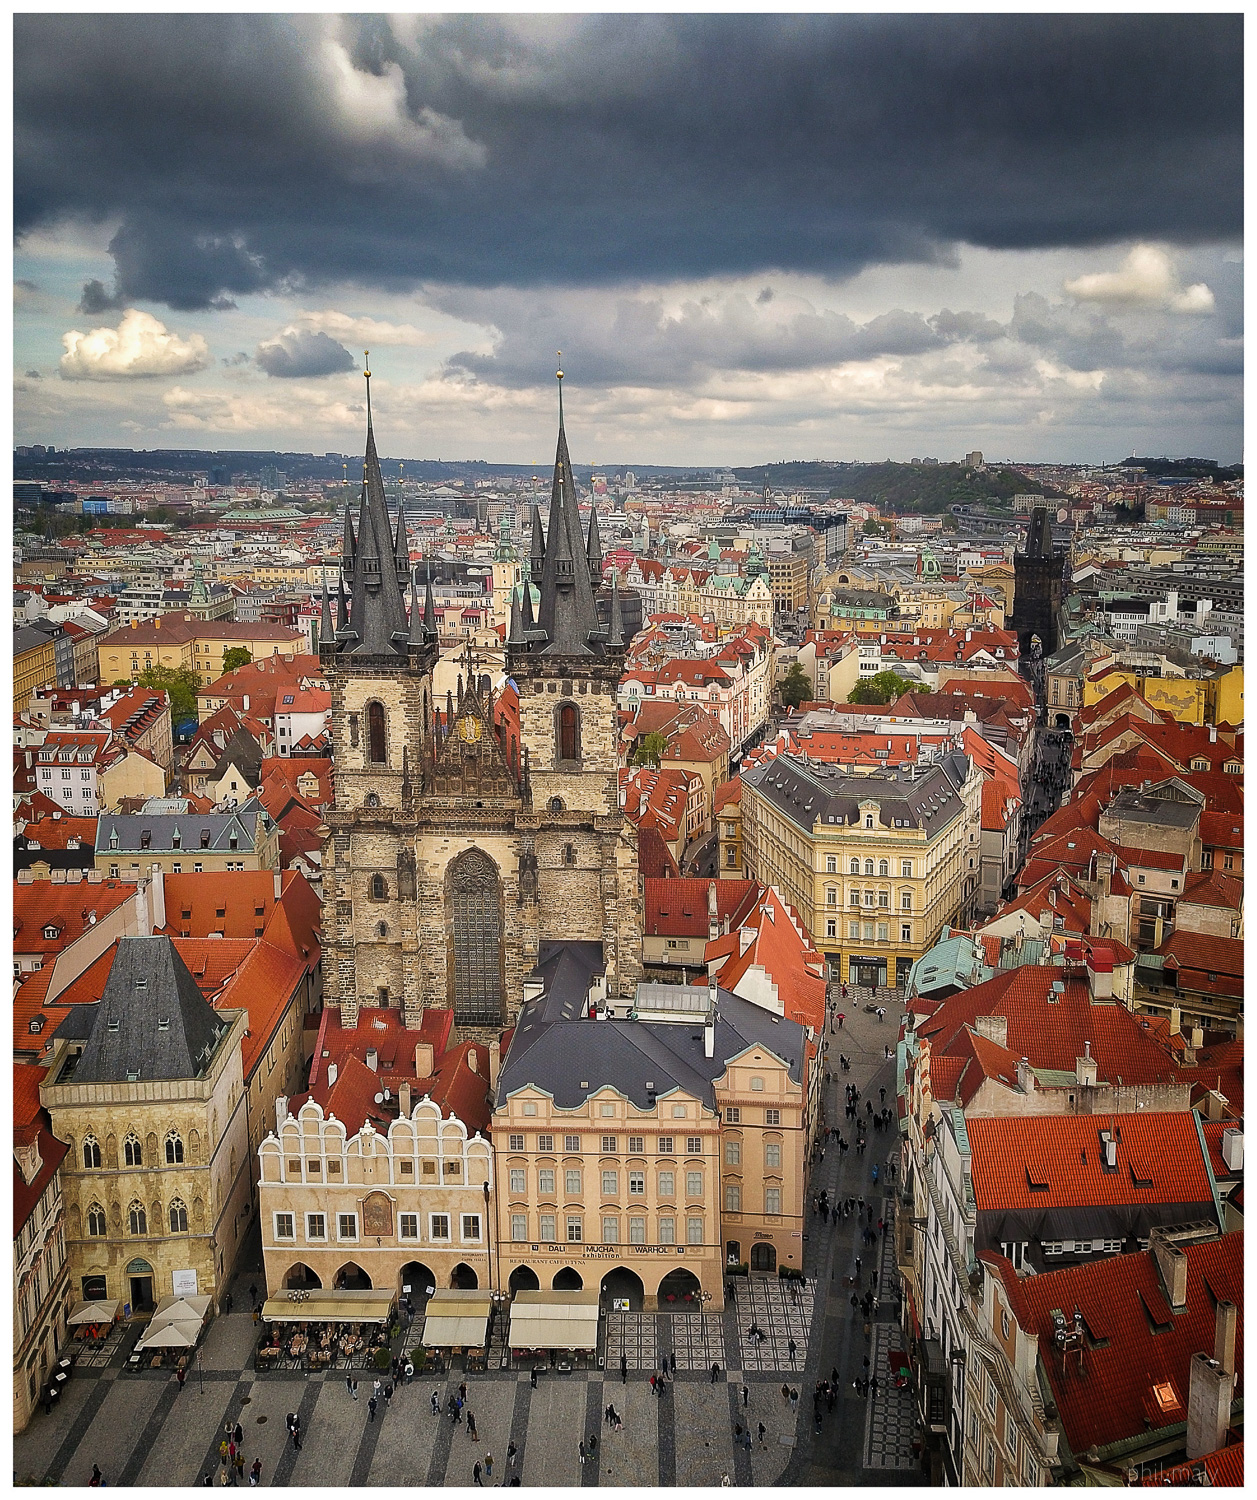 Drone shot of the gothic church of Tyn on the old town square of Prag